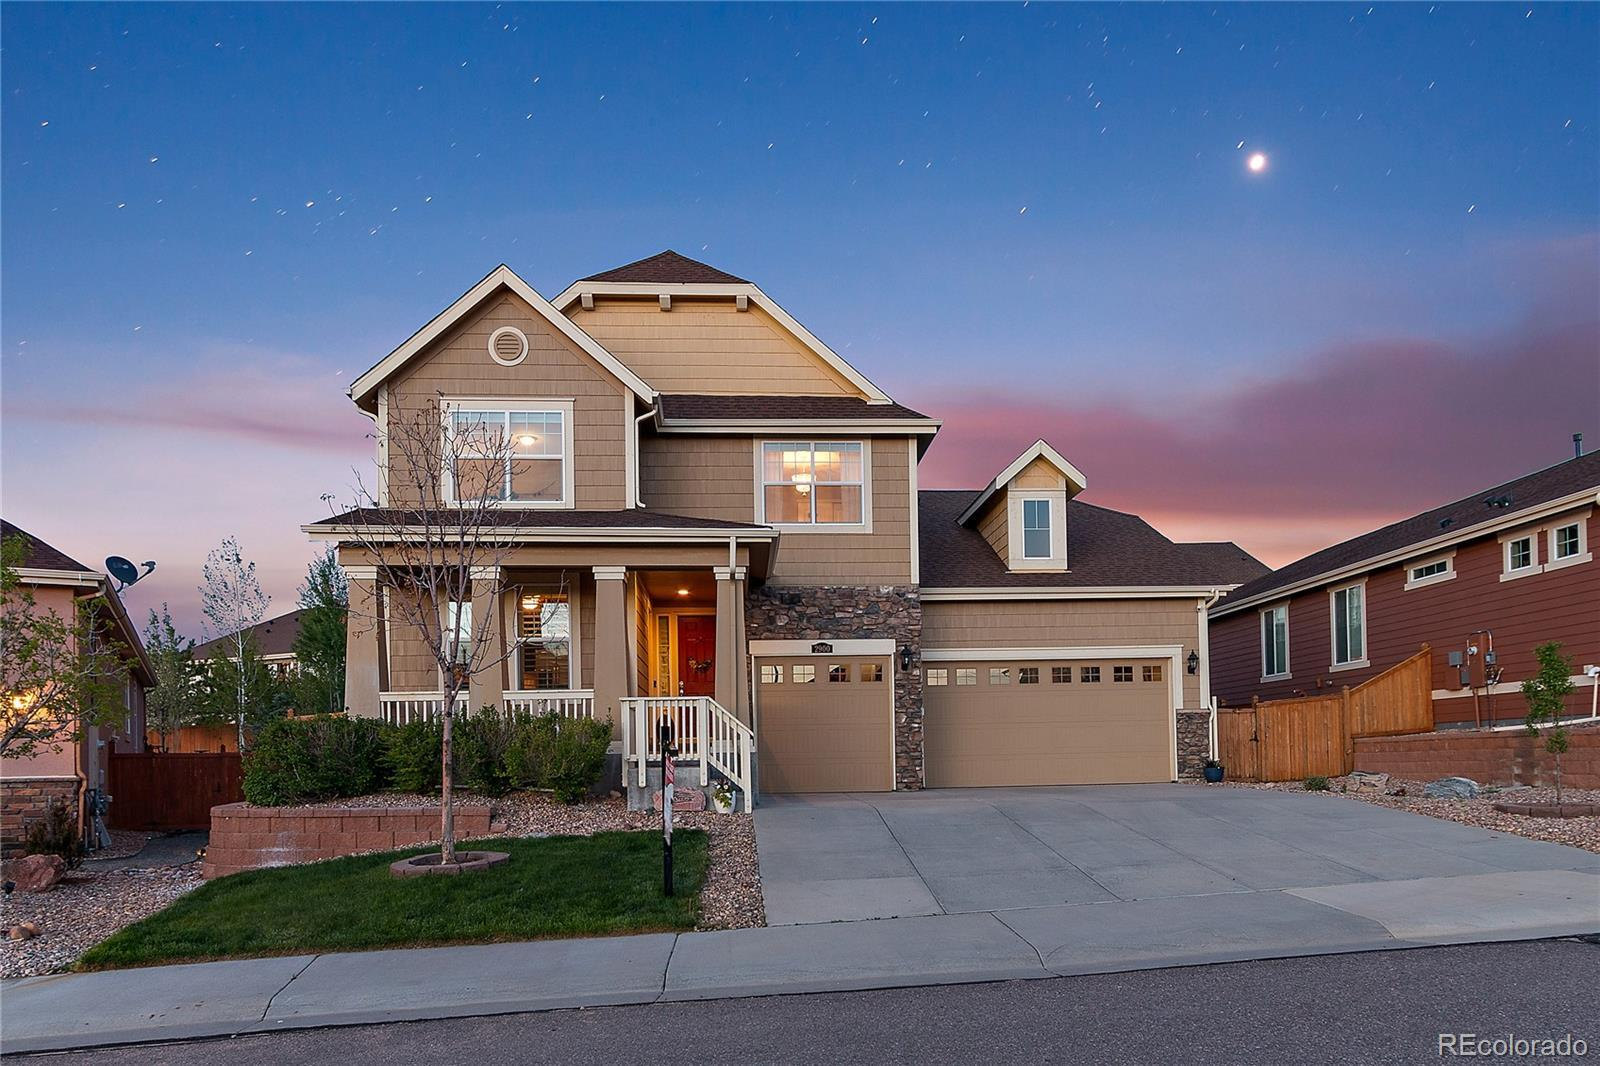 2900 Whitewing Way, Castle Rock, CO 80108 - #: 1500220